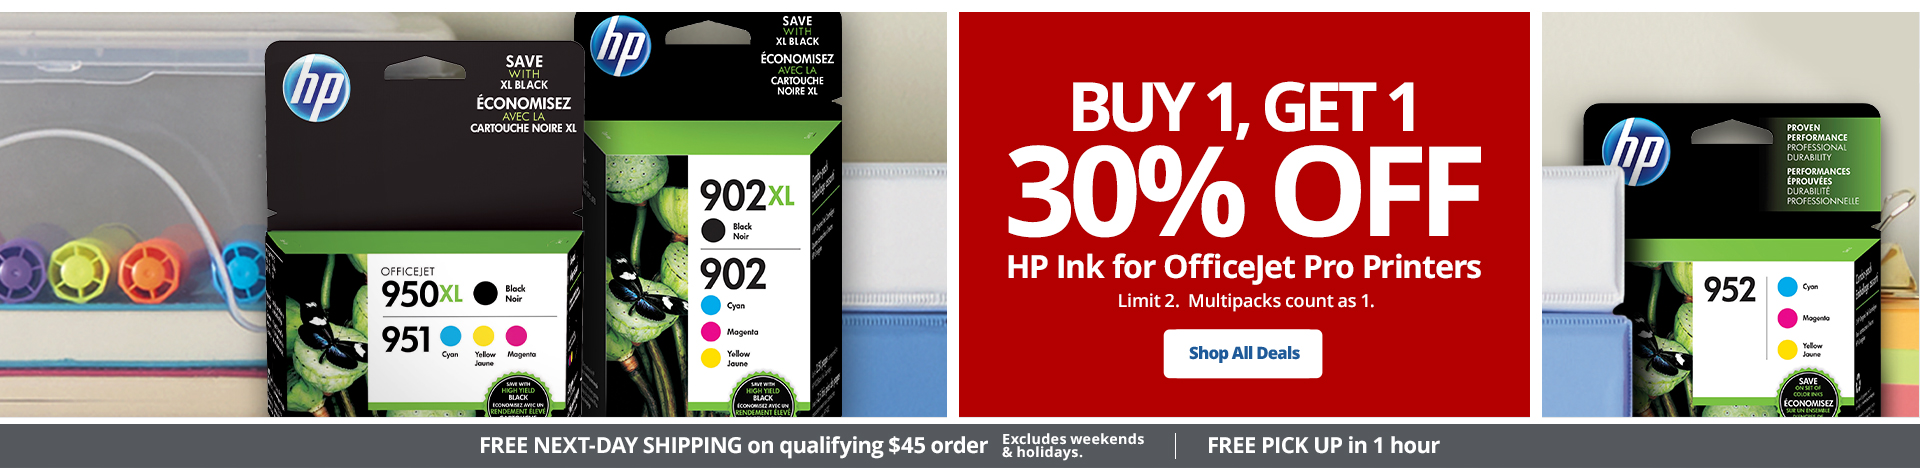 Buy1, Get 1 30% off HP Ink for OfficeJet Pro printers. Limit 2. Multipacks count as 1.